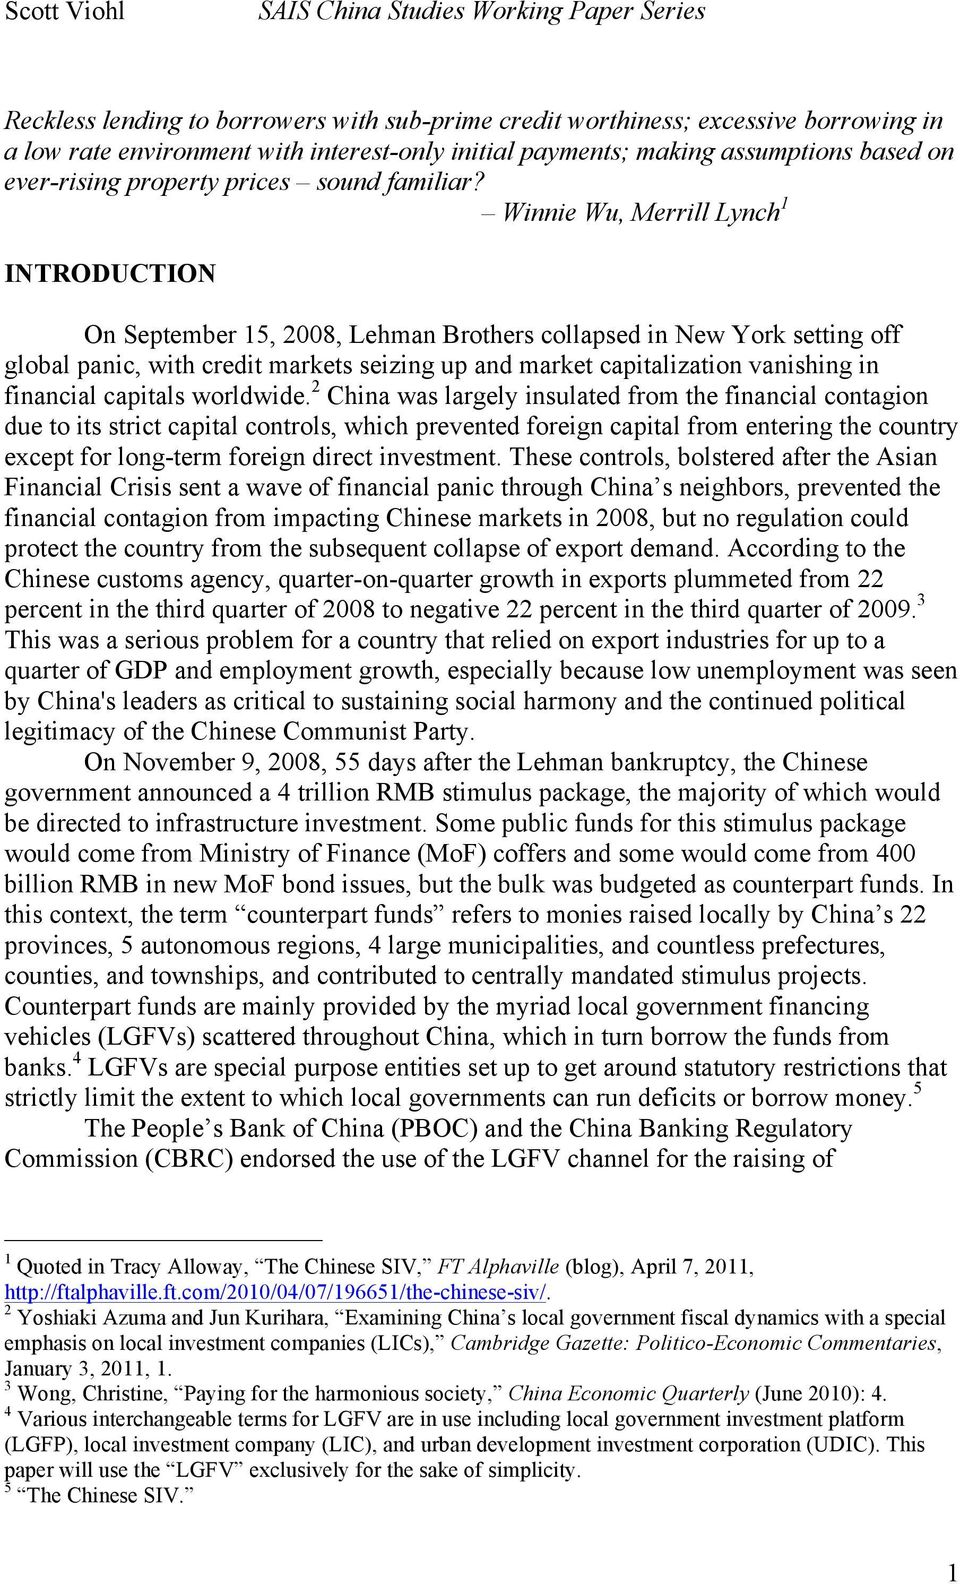 Winnie Wu, Merrill Lynch 1 INTRODUCTION On September 15, 2008, Lehman Brothers collapsed in New York setting off global panic, with credit markets seizing up and market capitalization vanishing in